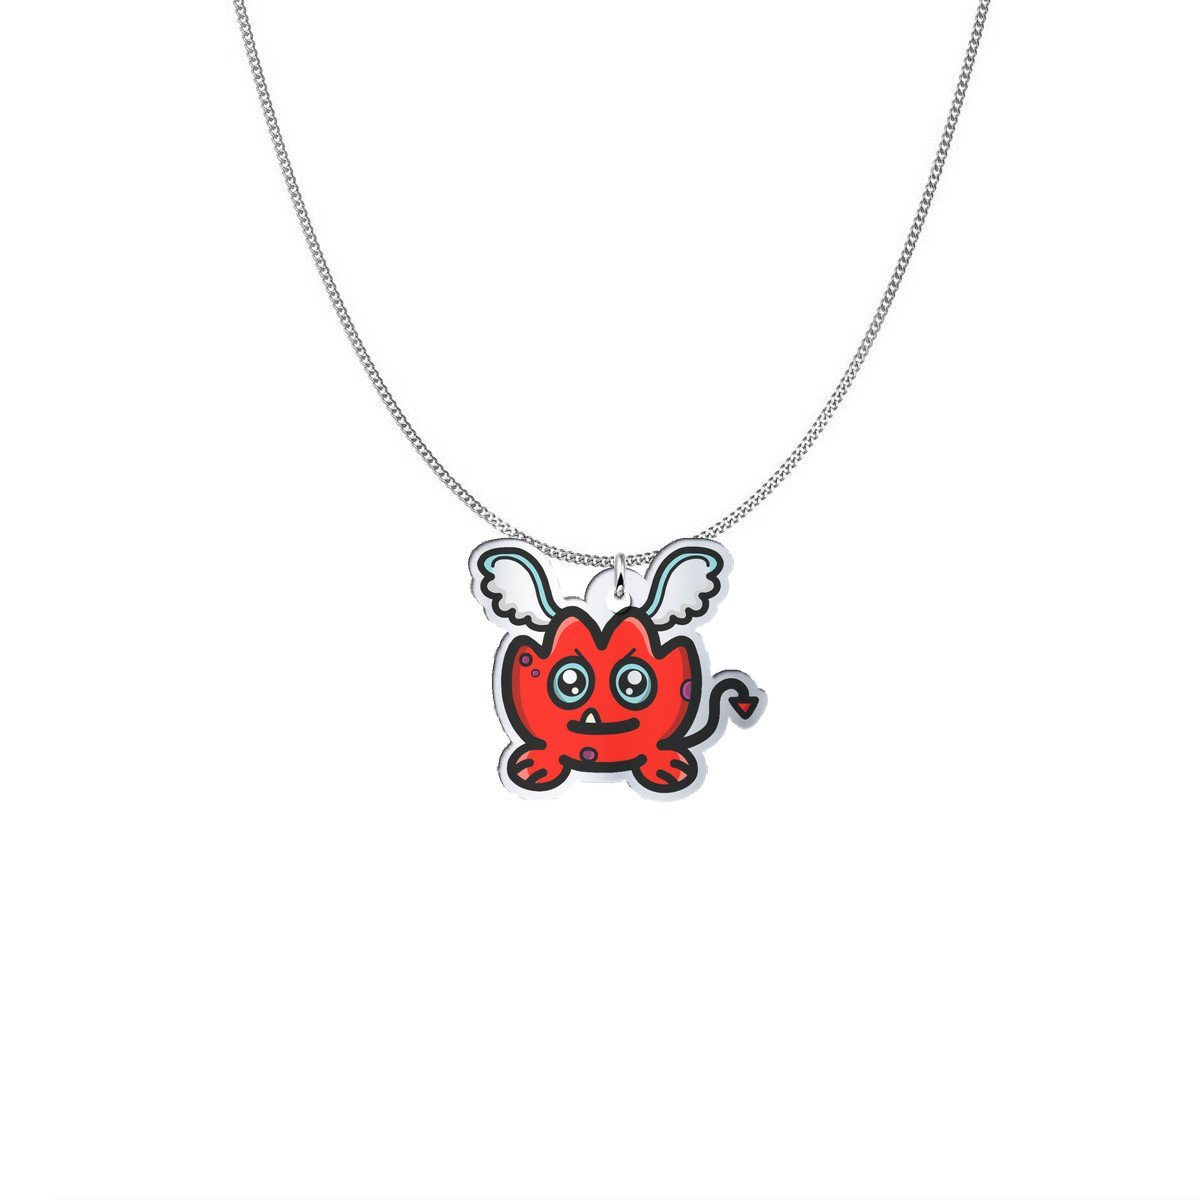 Pendant - Rara The Cheeky Demon Of Fear Silver Necklace